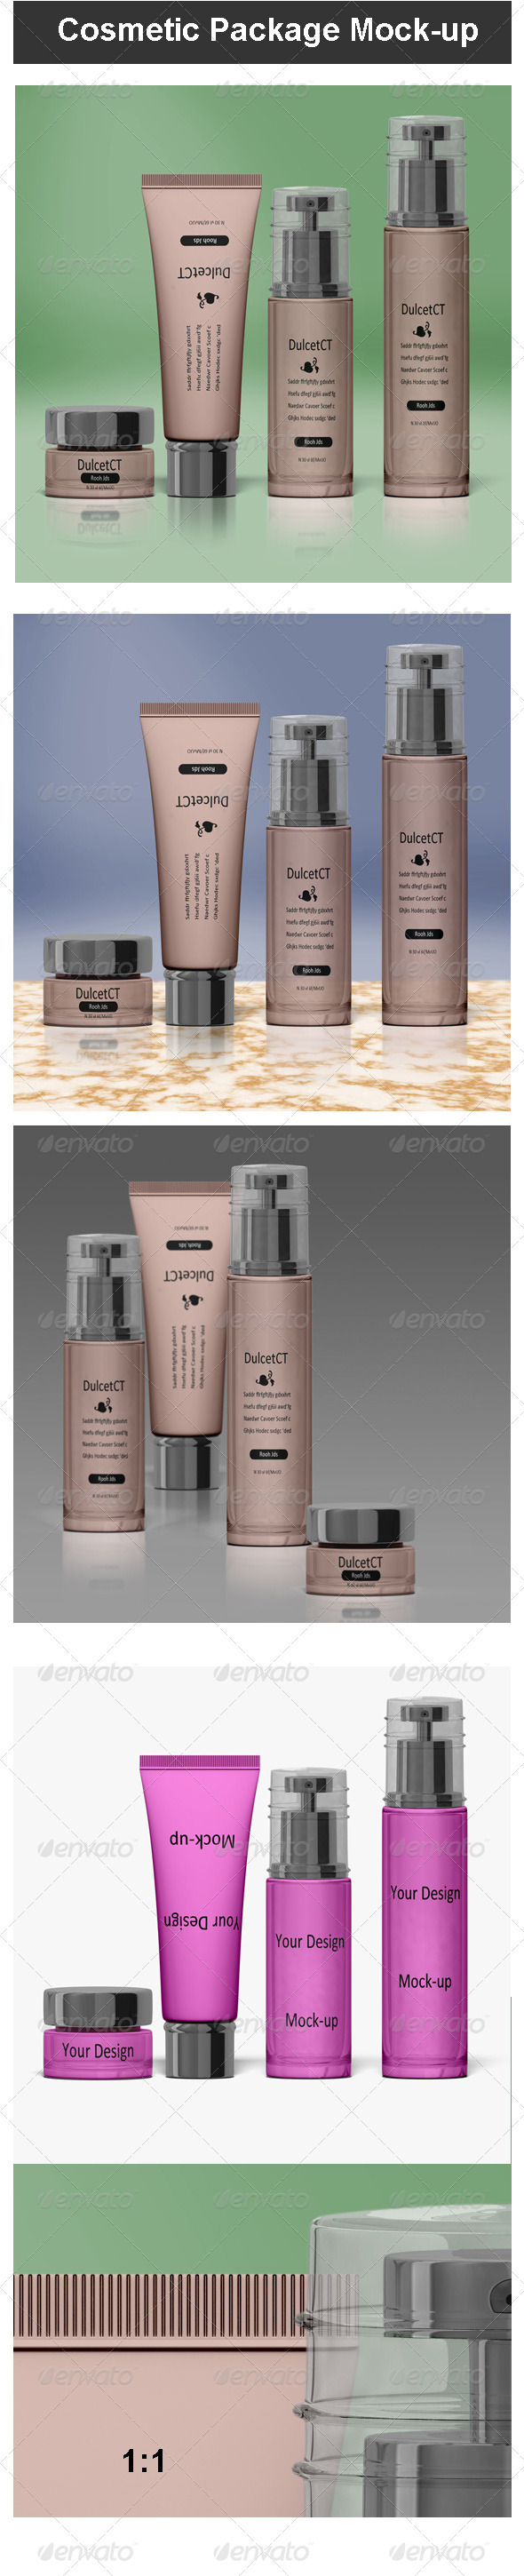 GraphicRiver Cosmetic Package Mock-up 3496466